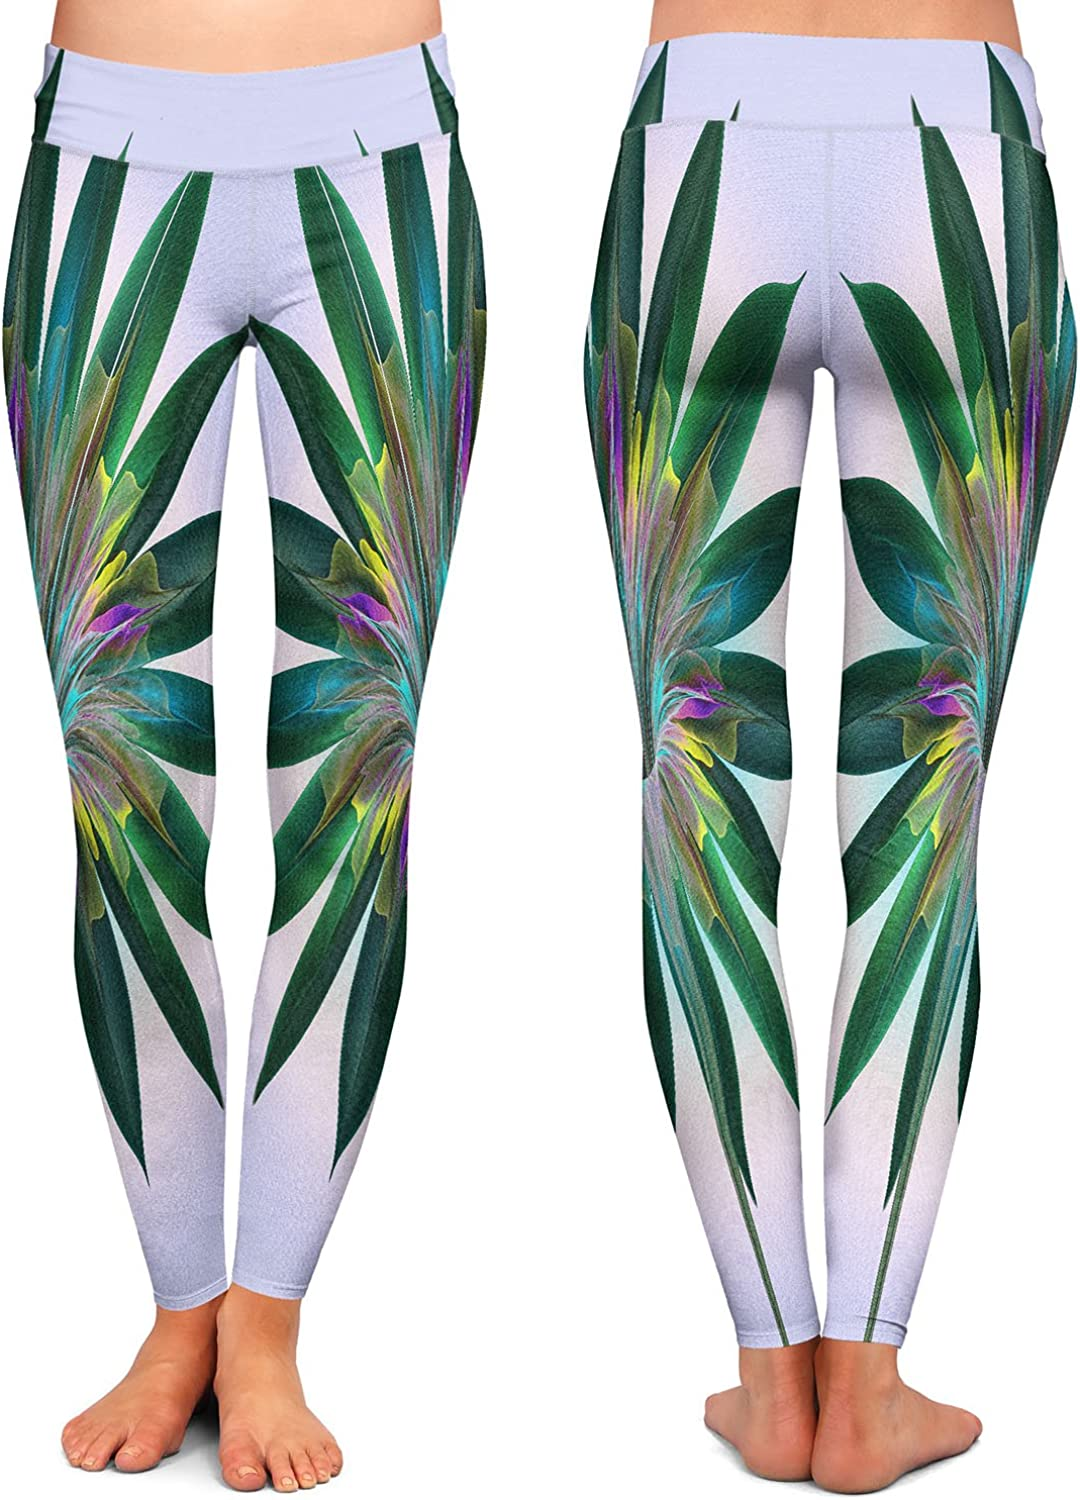 Floral Bliss Violet Green Athletic Yoga Leggings from DiaNoche Designs by Pam Amos